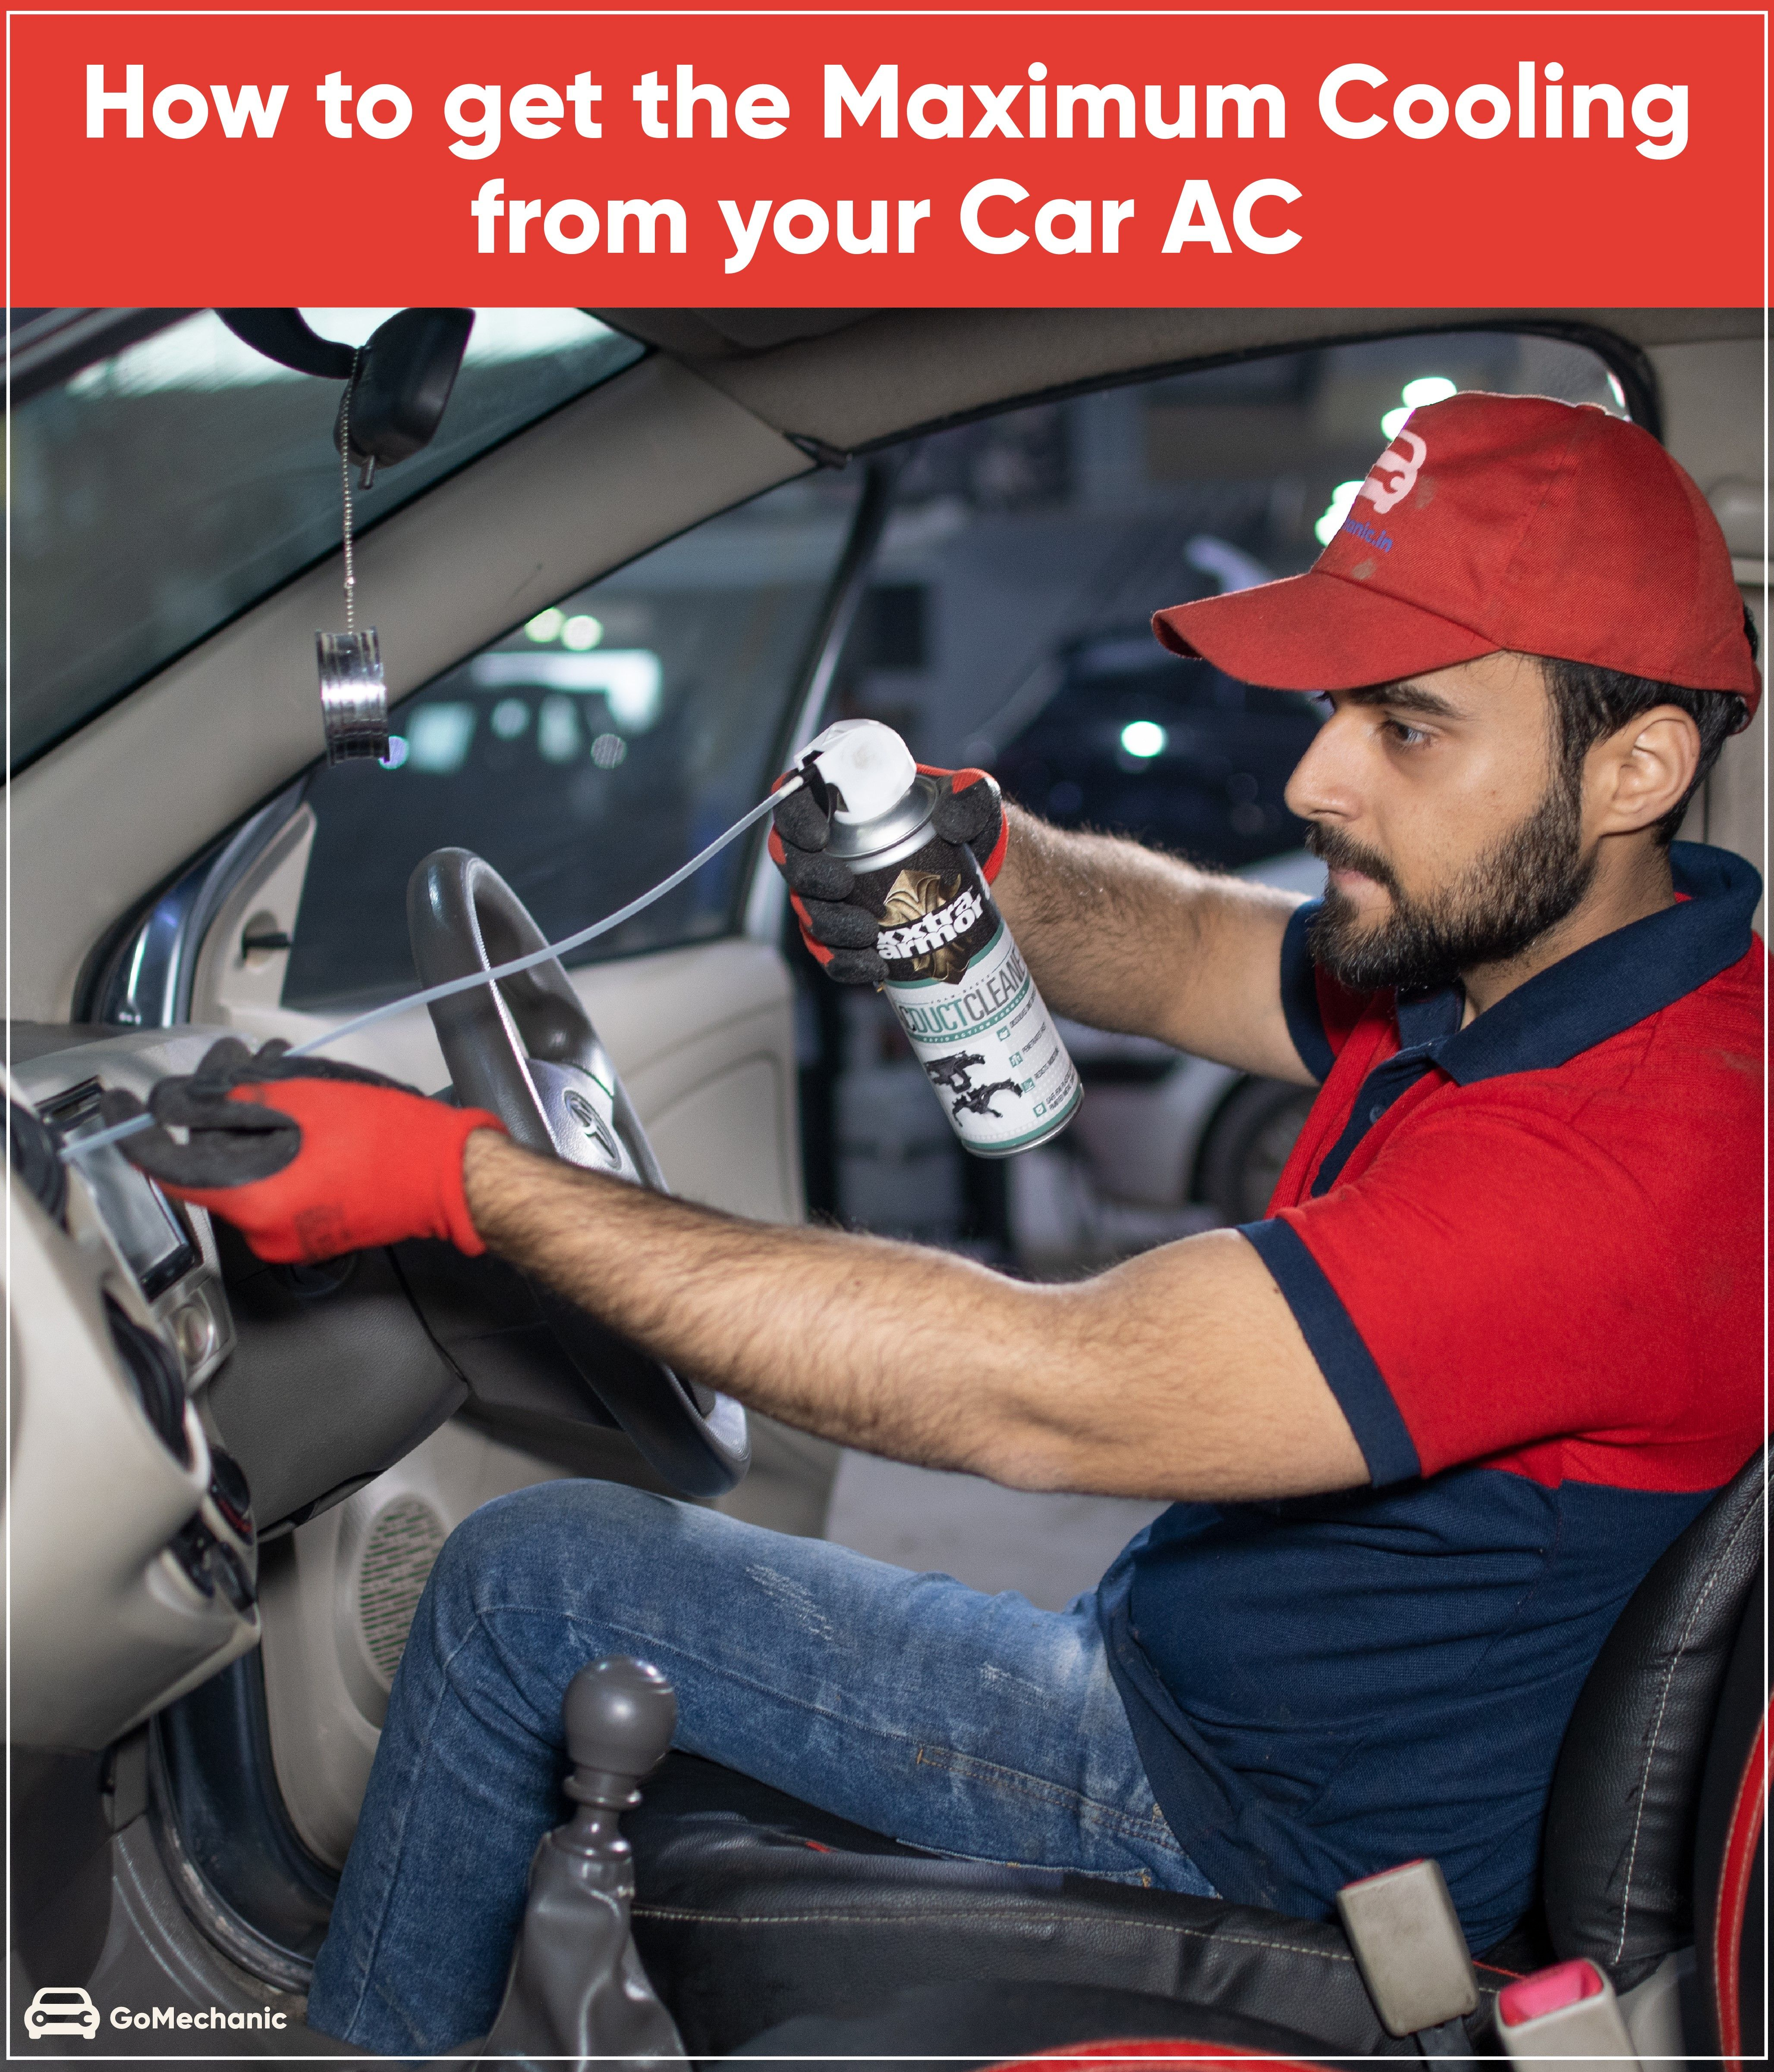 How To Get The Maximum Cooling From Your Car Ac In 2020 Car Air